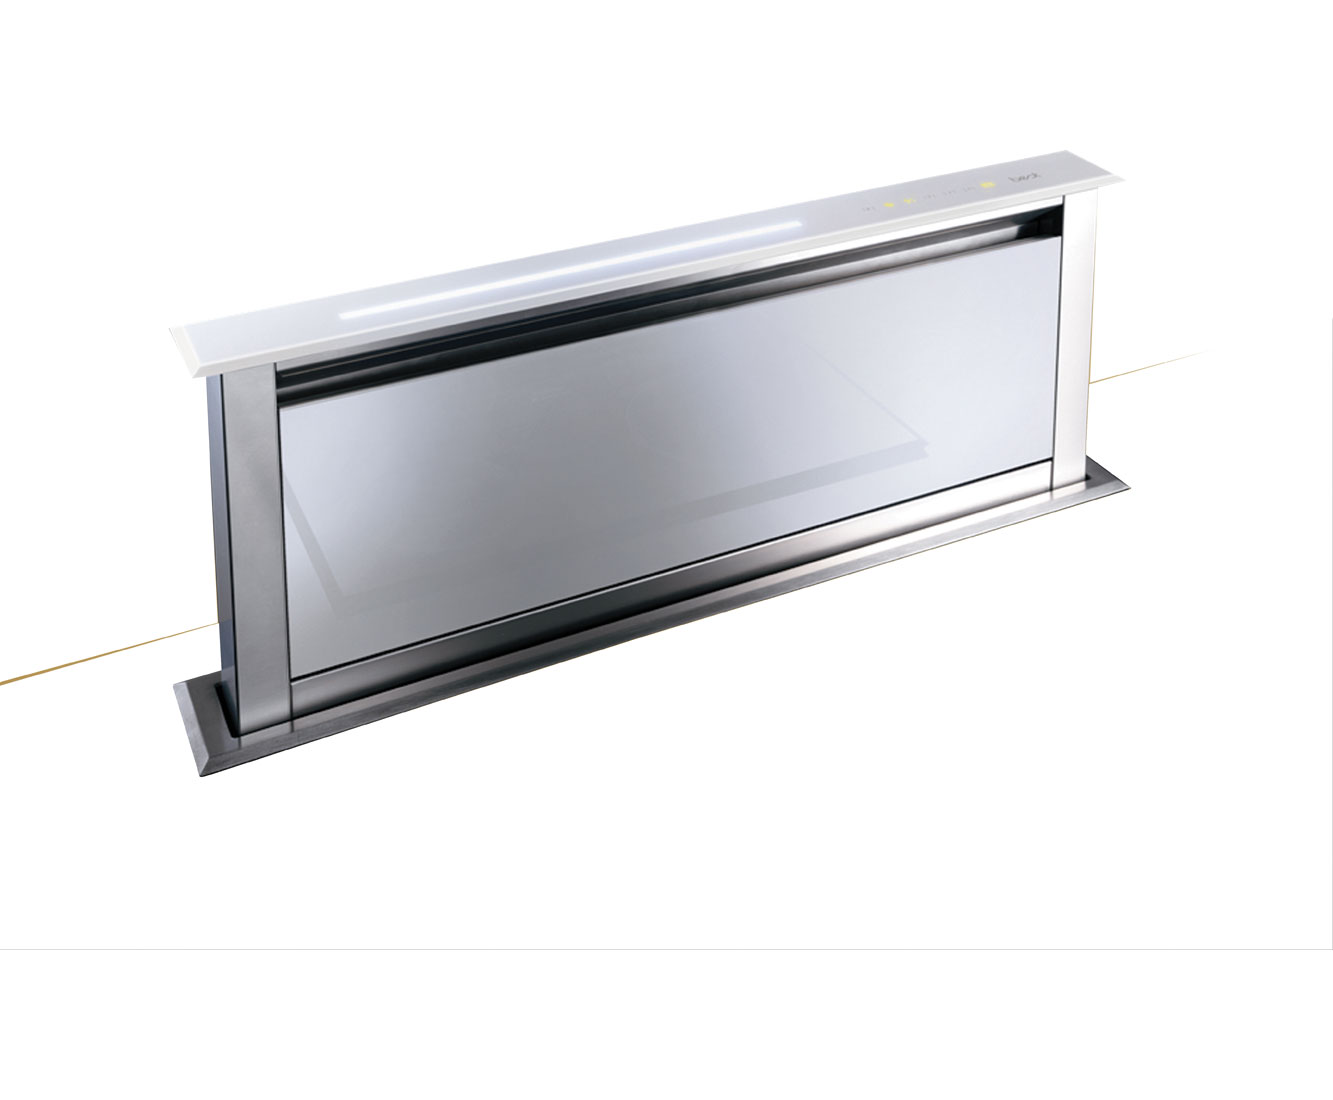 BEST Lift HOODBELI60WH Integrated Cooker Hood in White